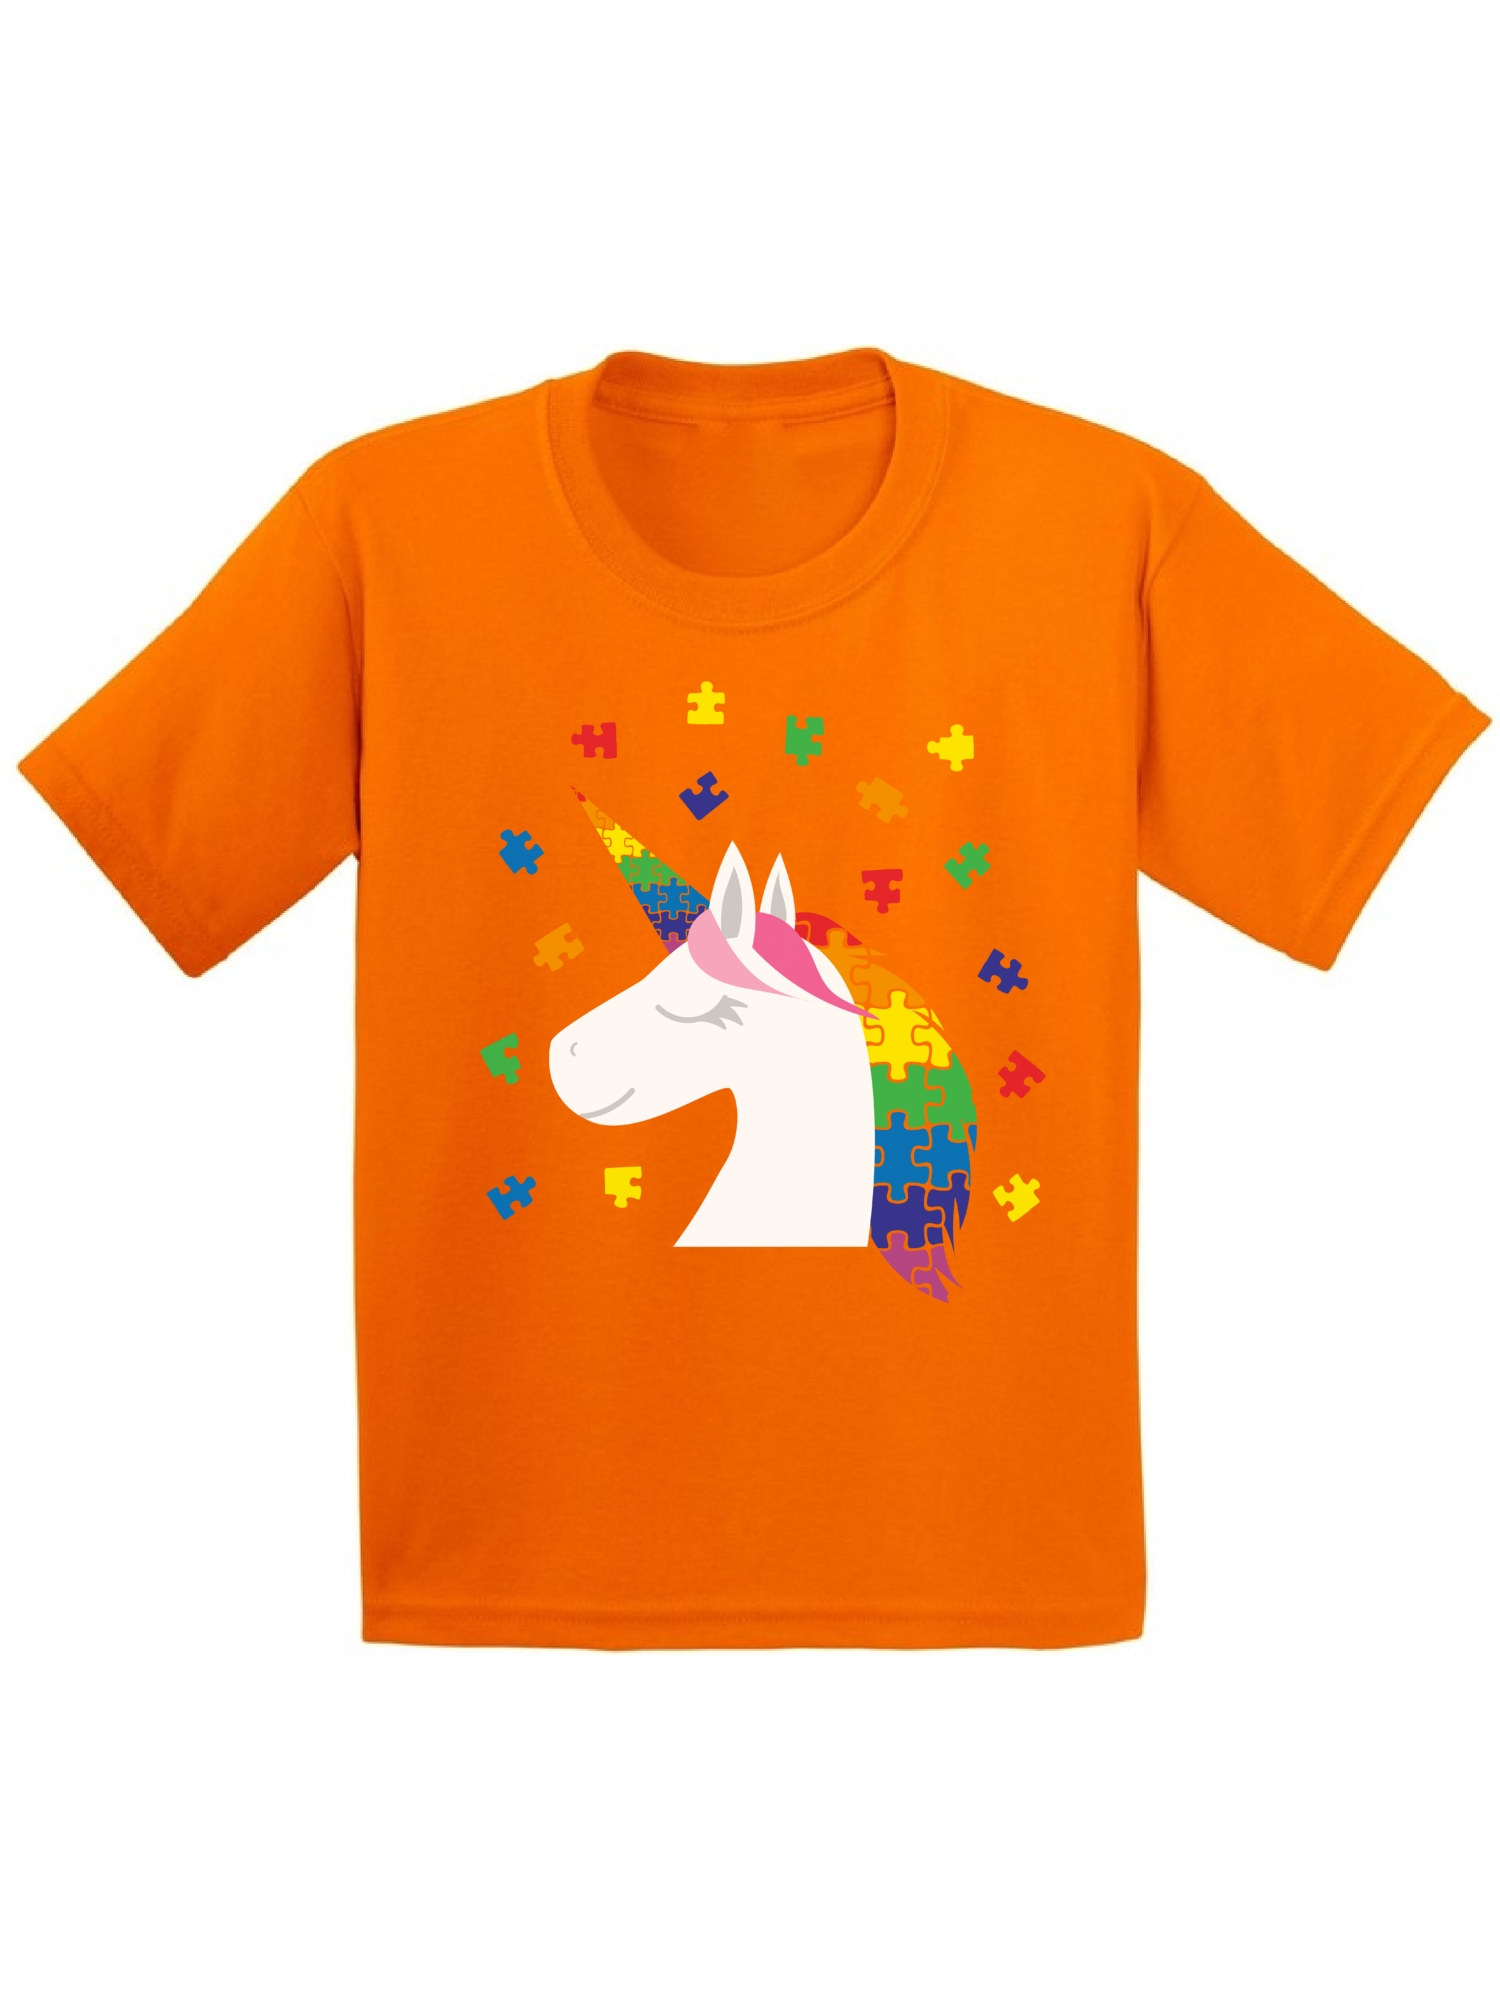 Awkward Styles Youth Unicorn Autism Shirt for Kids Autism Awareness Shirt Puzzle Autism Gifts for Kids Autistic Kids Gift Ideas Autism Awareness Shirts Kids Autism Gifts Awareness Gifts